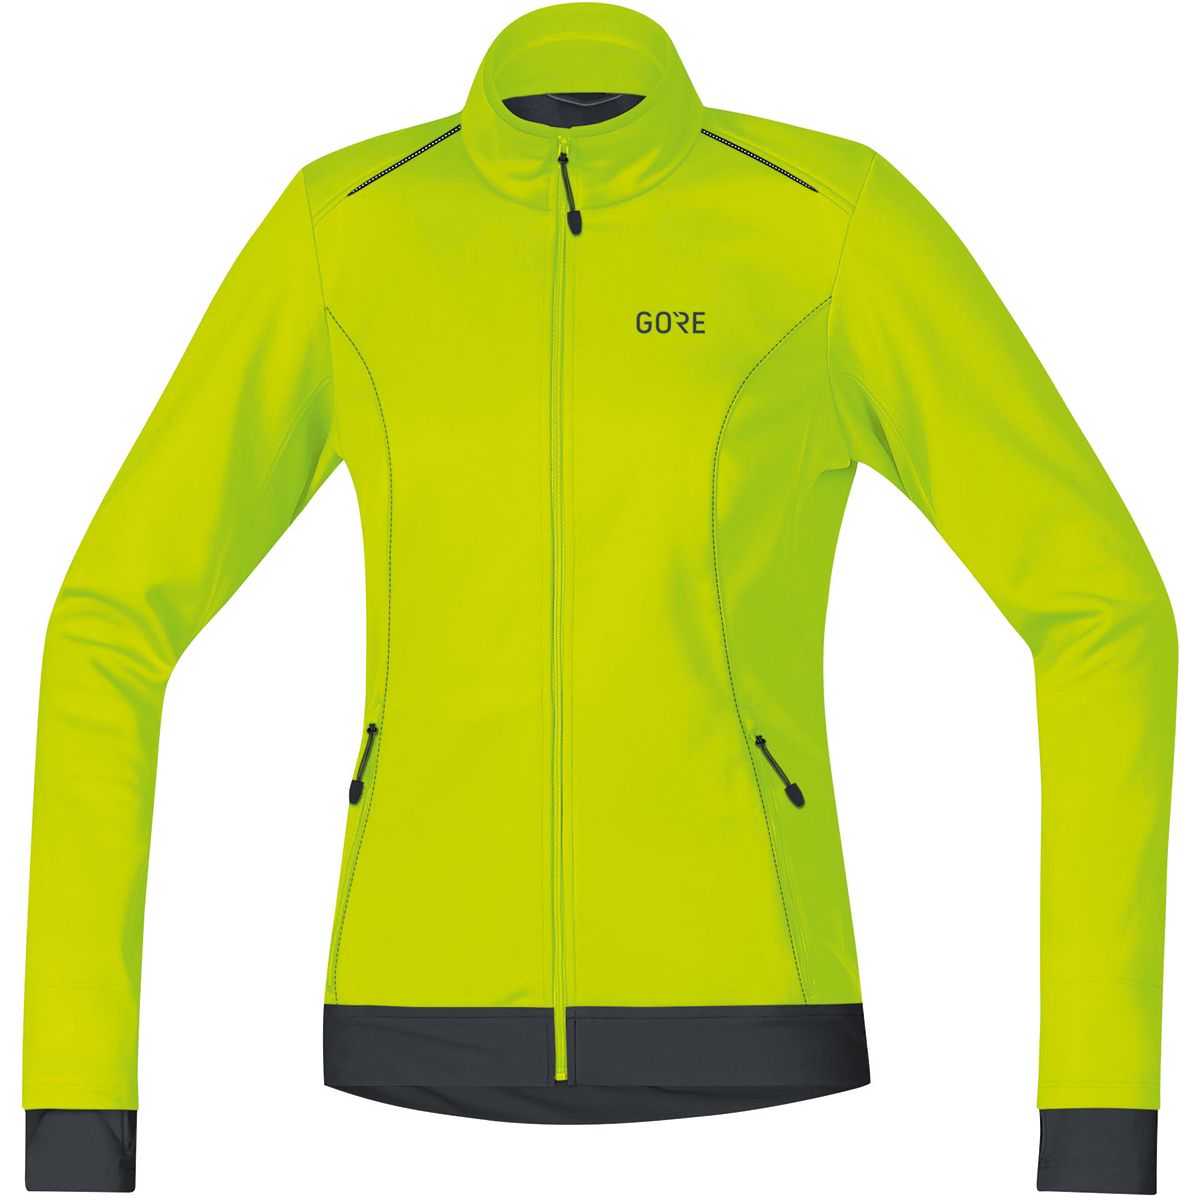 Gore Wear Damen C3 Gore ® WINDSTOPPER® Thermo Jacke (Größe M, Gelb) | Windbreaker > Damen